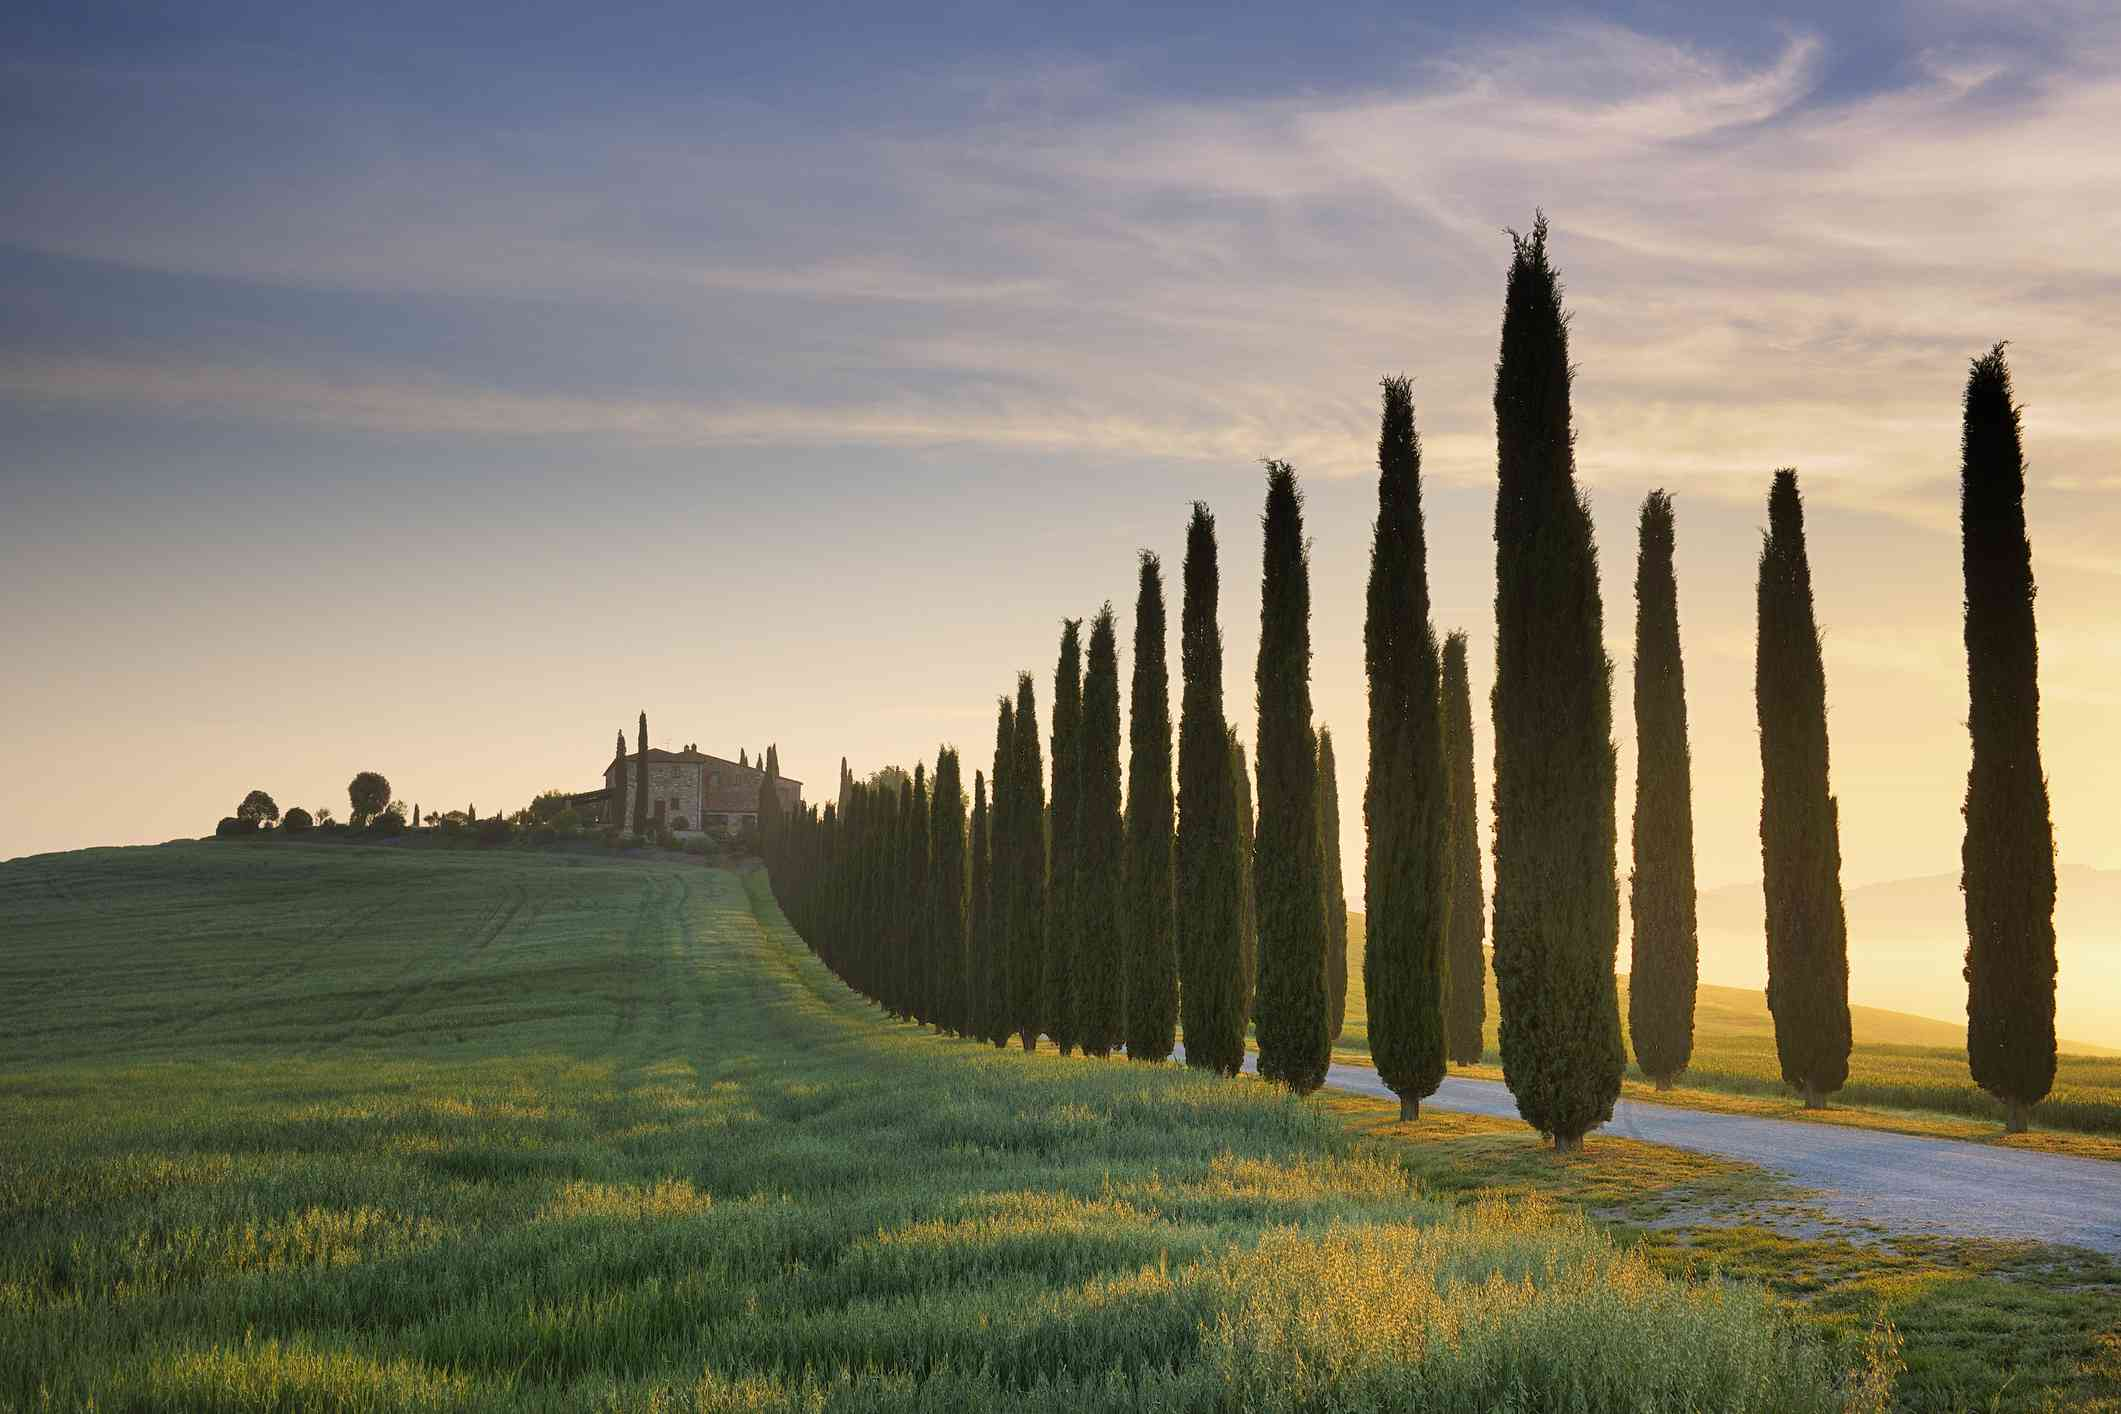 Typical Tuscany landscape with cypress trees